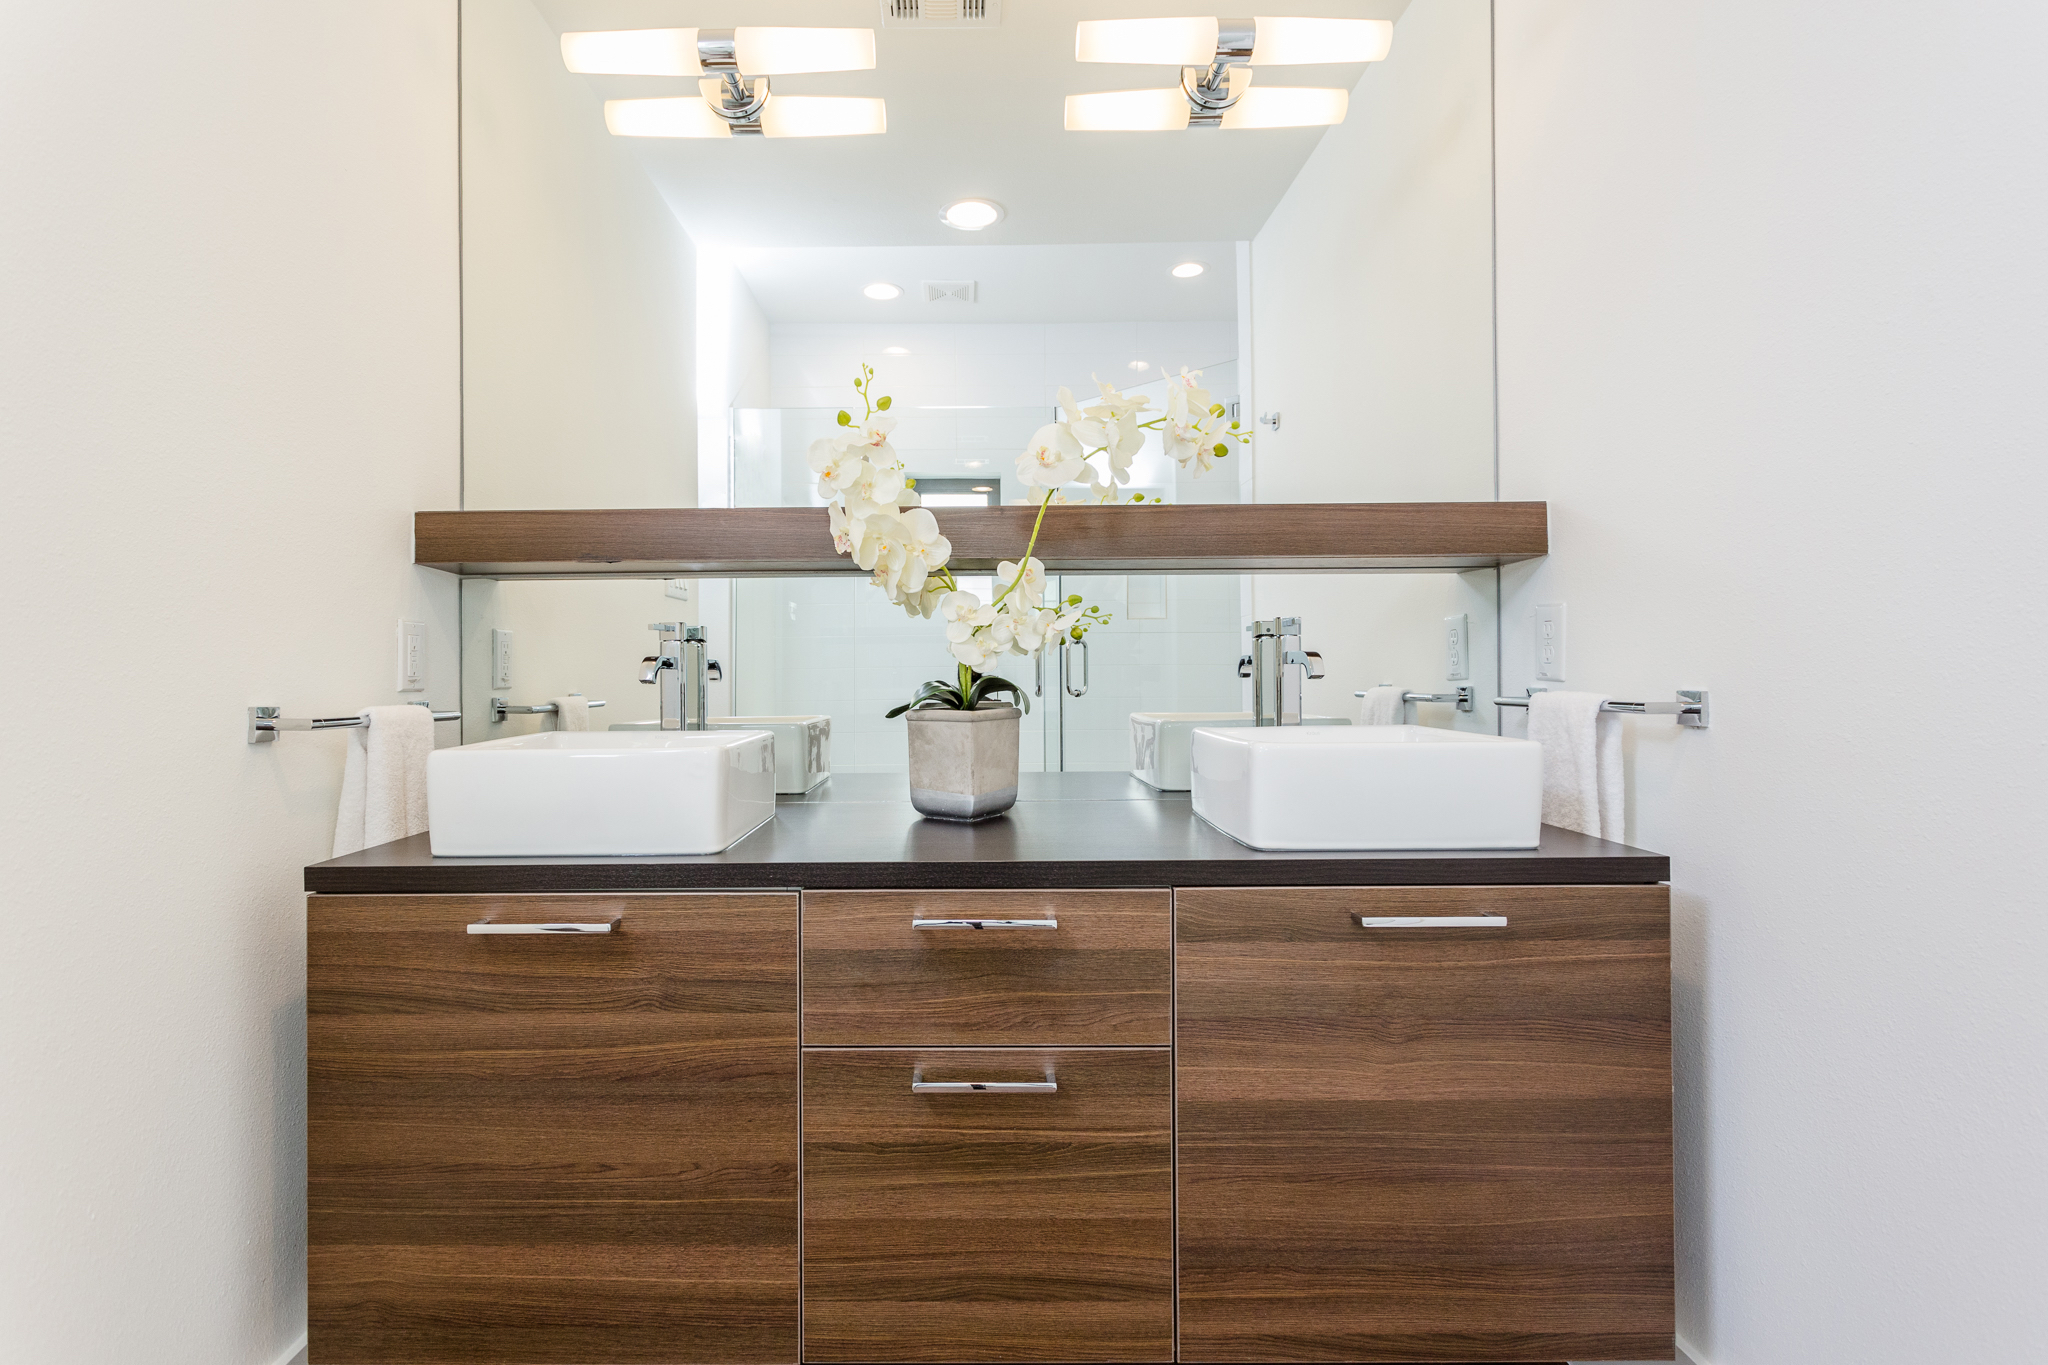 The sleek, floating cabinet and large, sparkling mirror bring a sense of sophistication and openness to the bathroom.